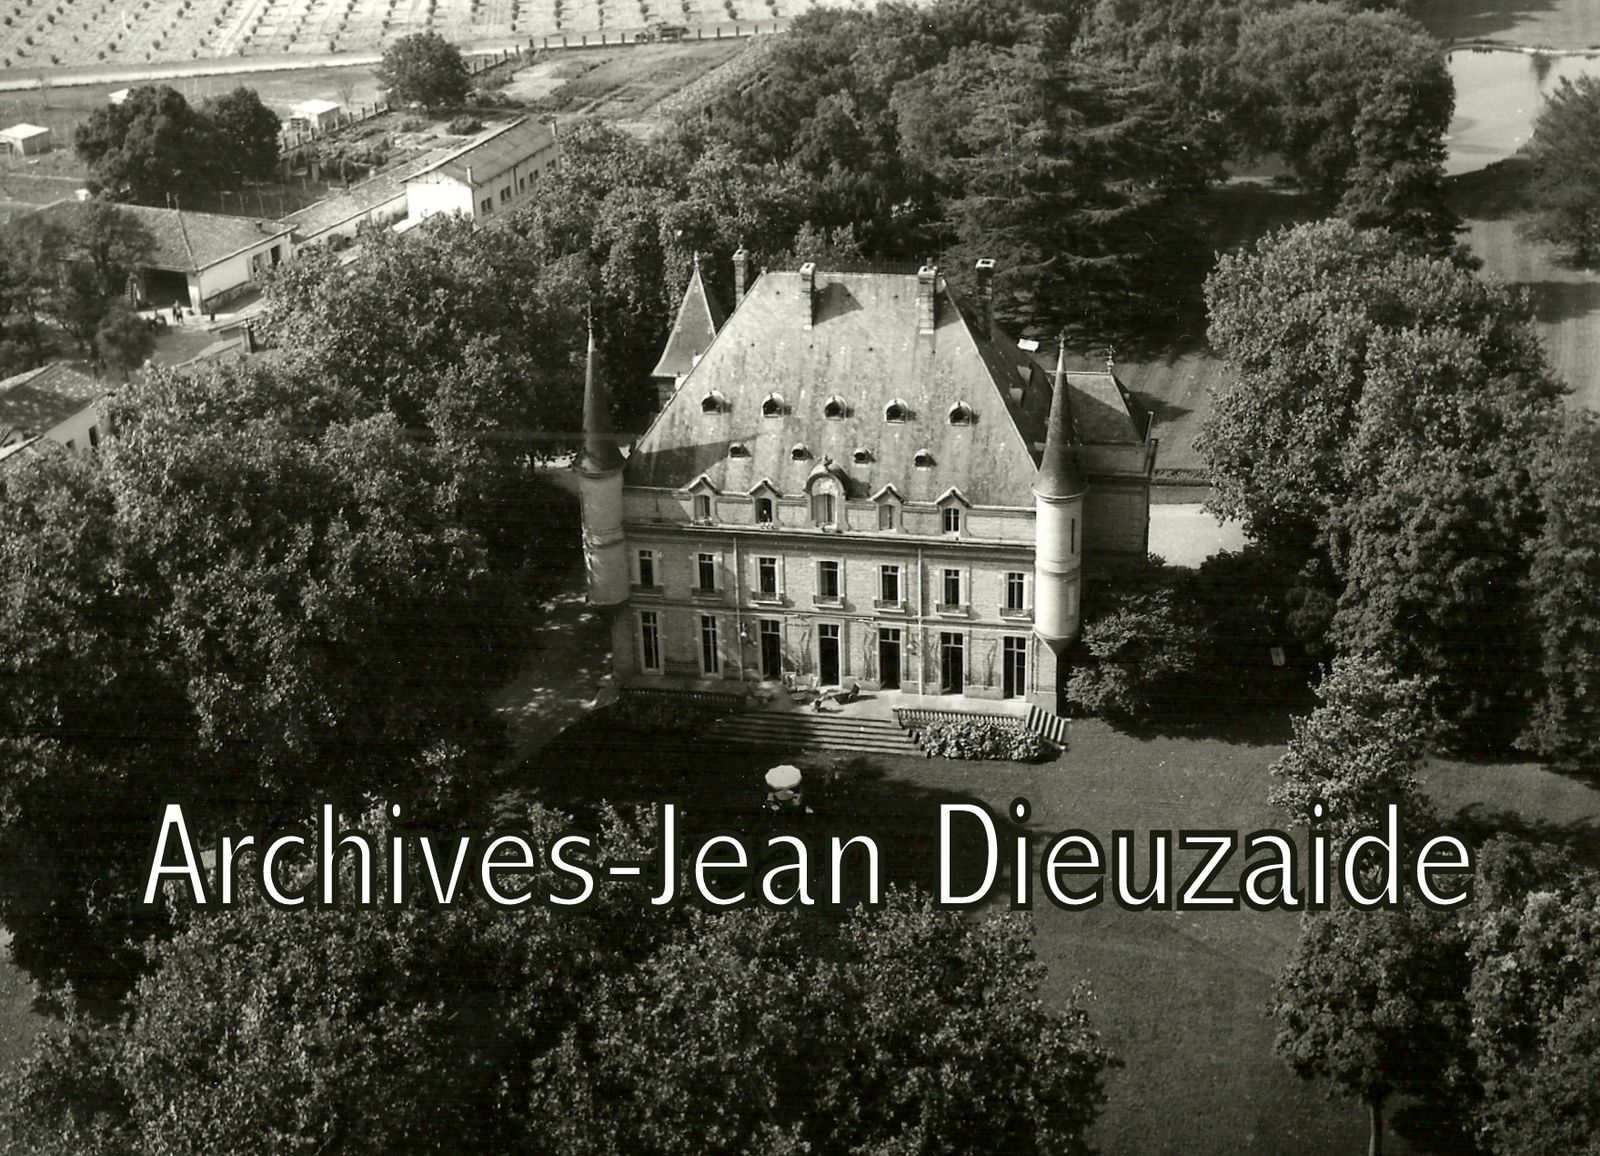 Photo 1: Mme Dieuzaide, photo 2: le château de Nolet photographié par Jean Dieuzaide